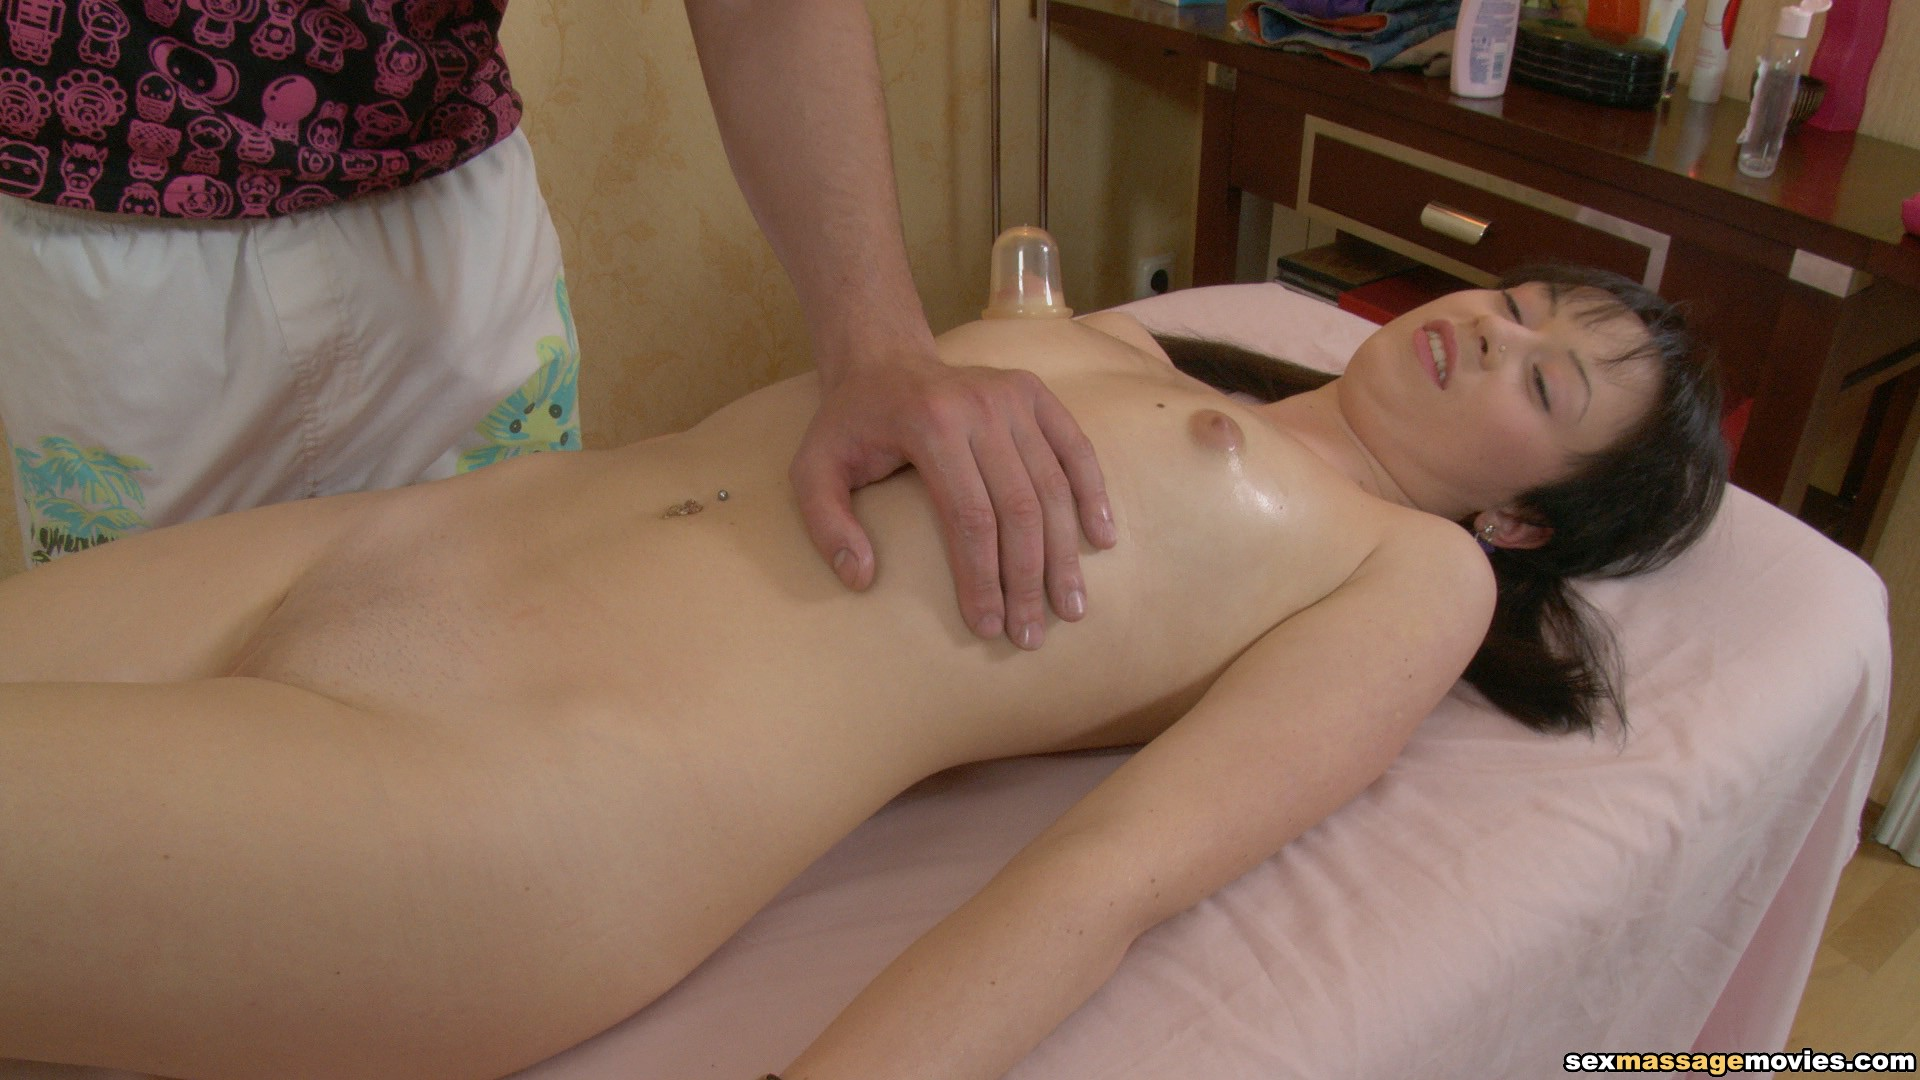 sex o video massage majorna